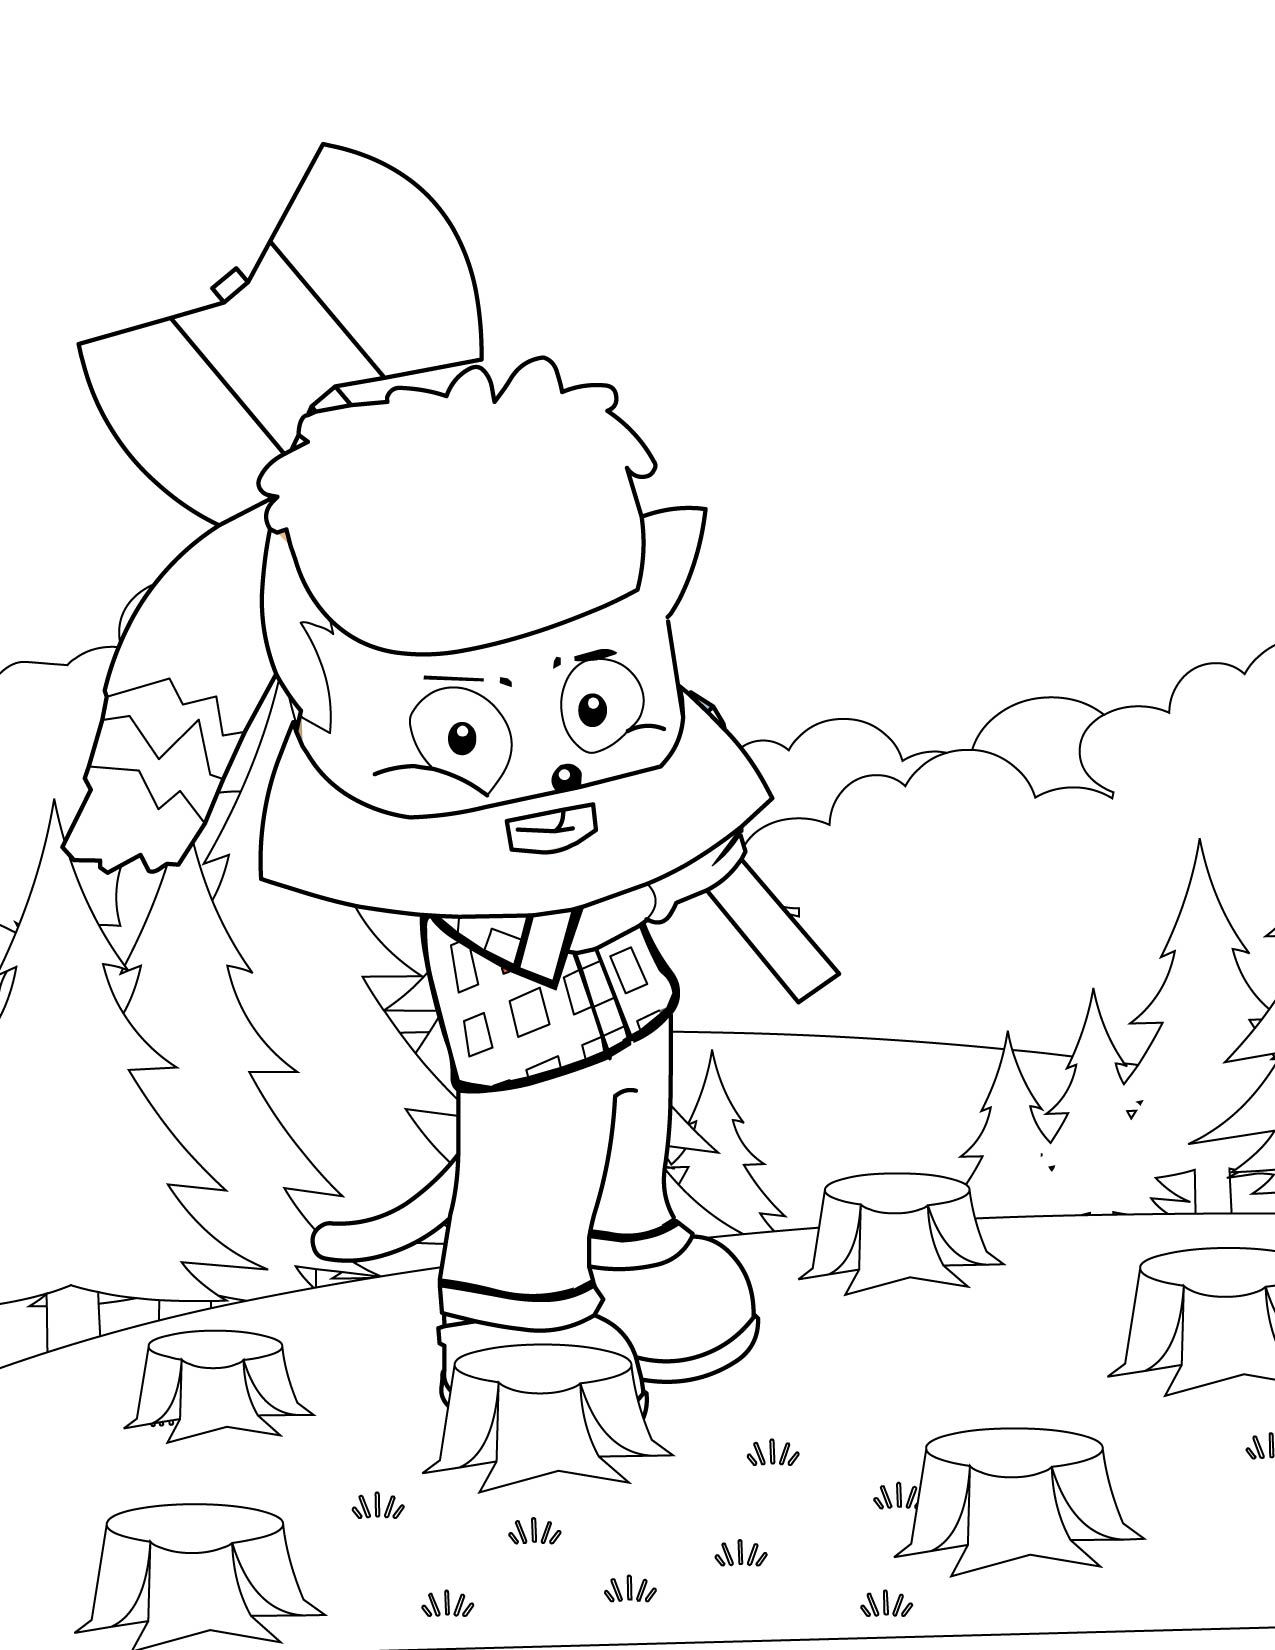 paul bunyan coloring pages kids - photo#1